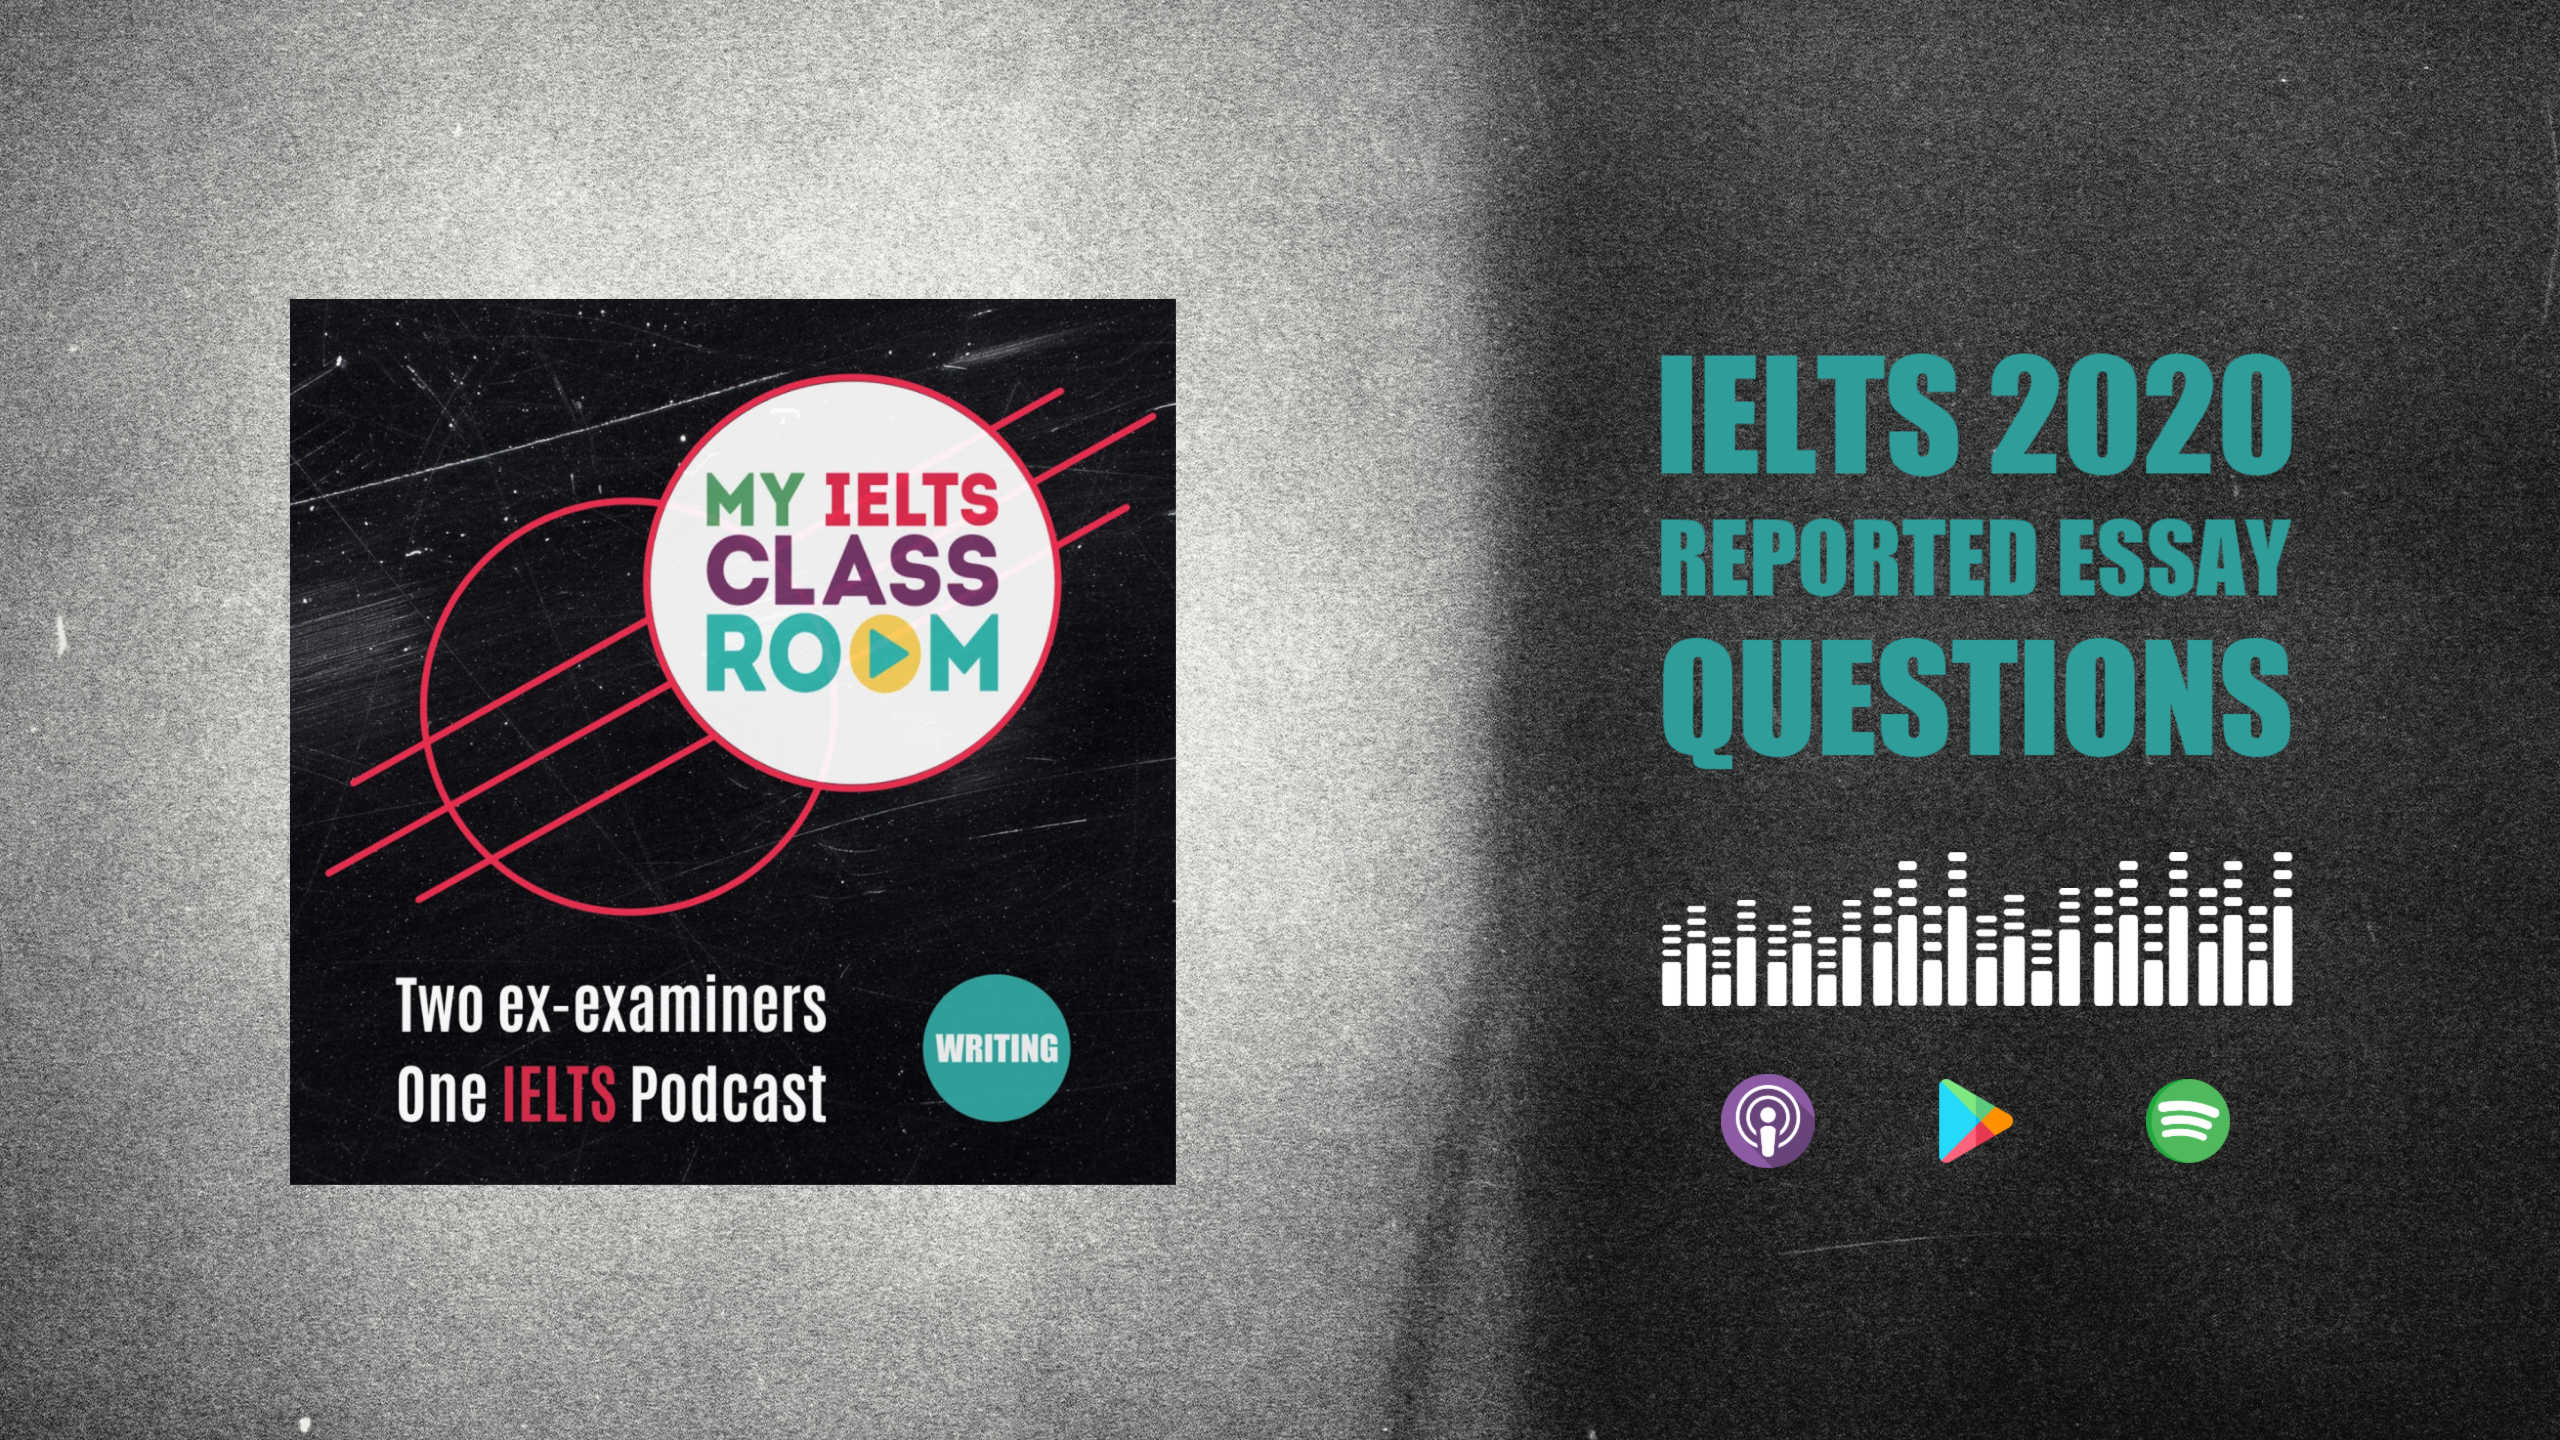 The podcast cover for My IELTS Classroom sits next t the words IELTS 2020 Essay questions